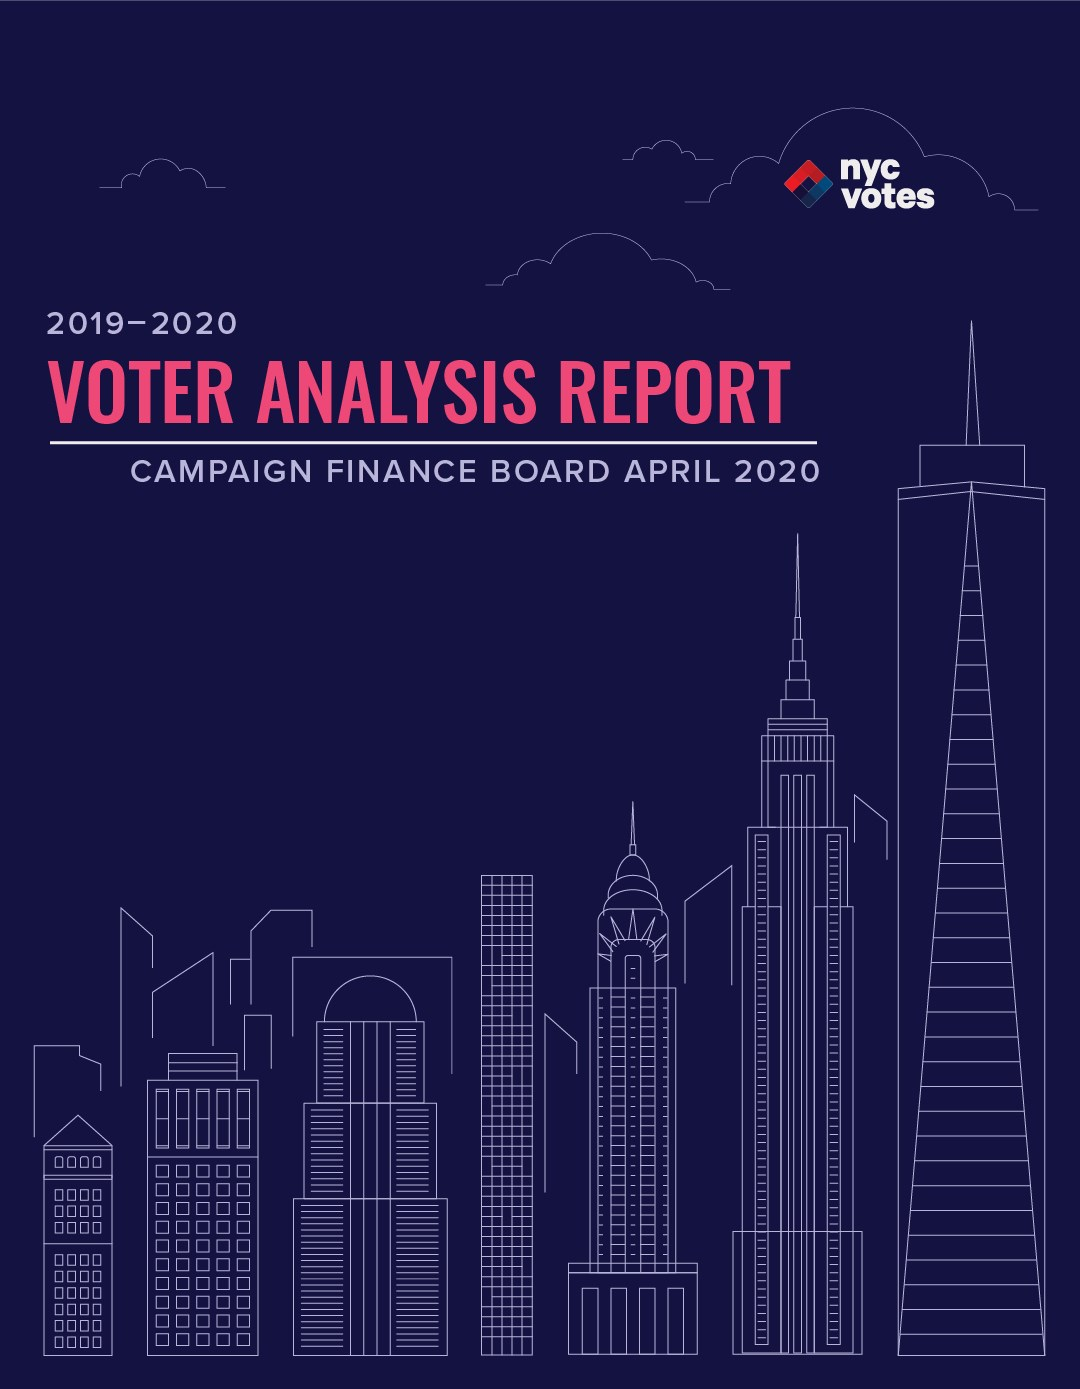 Voter Analysis Report